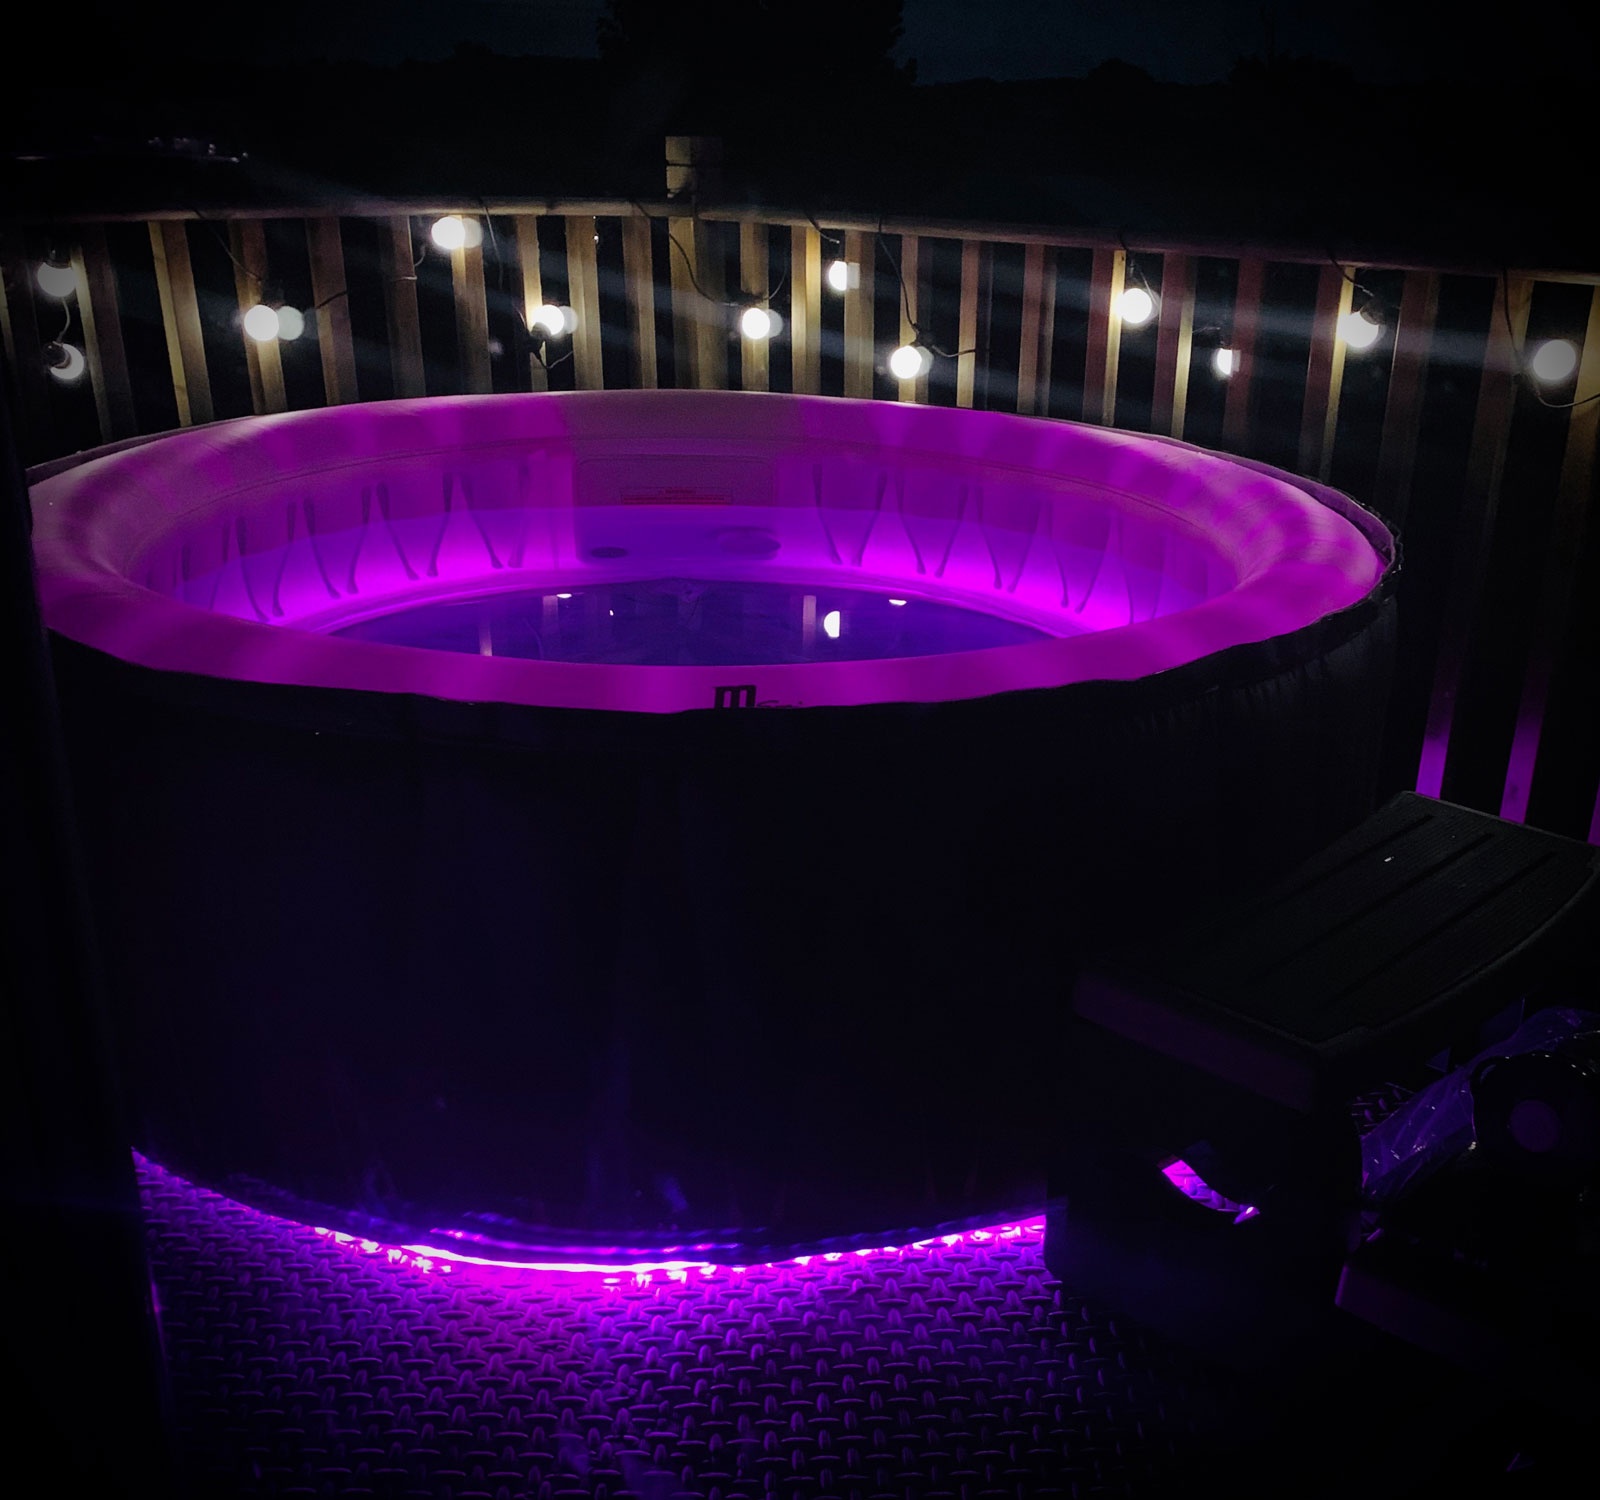 Deluxe hot tub at night with purple light